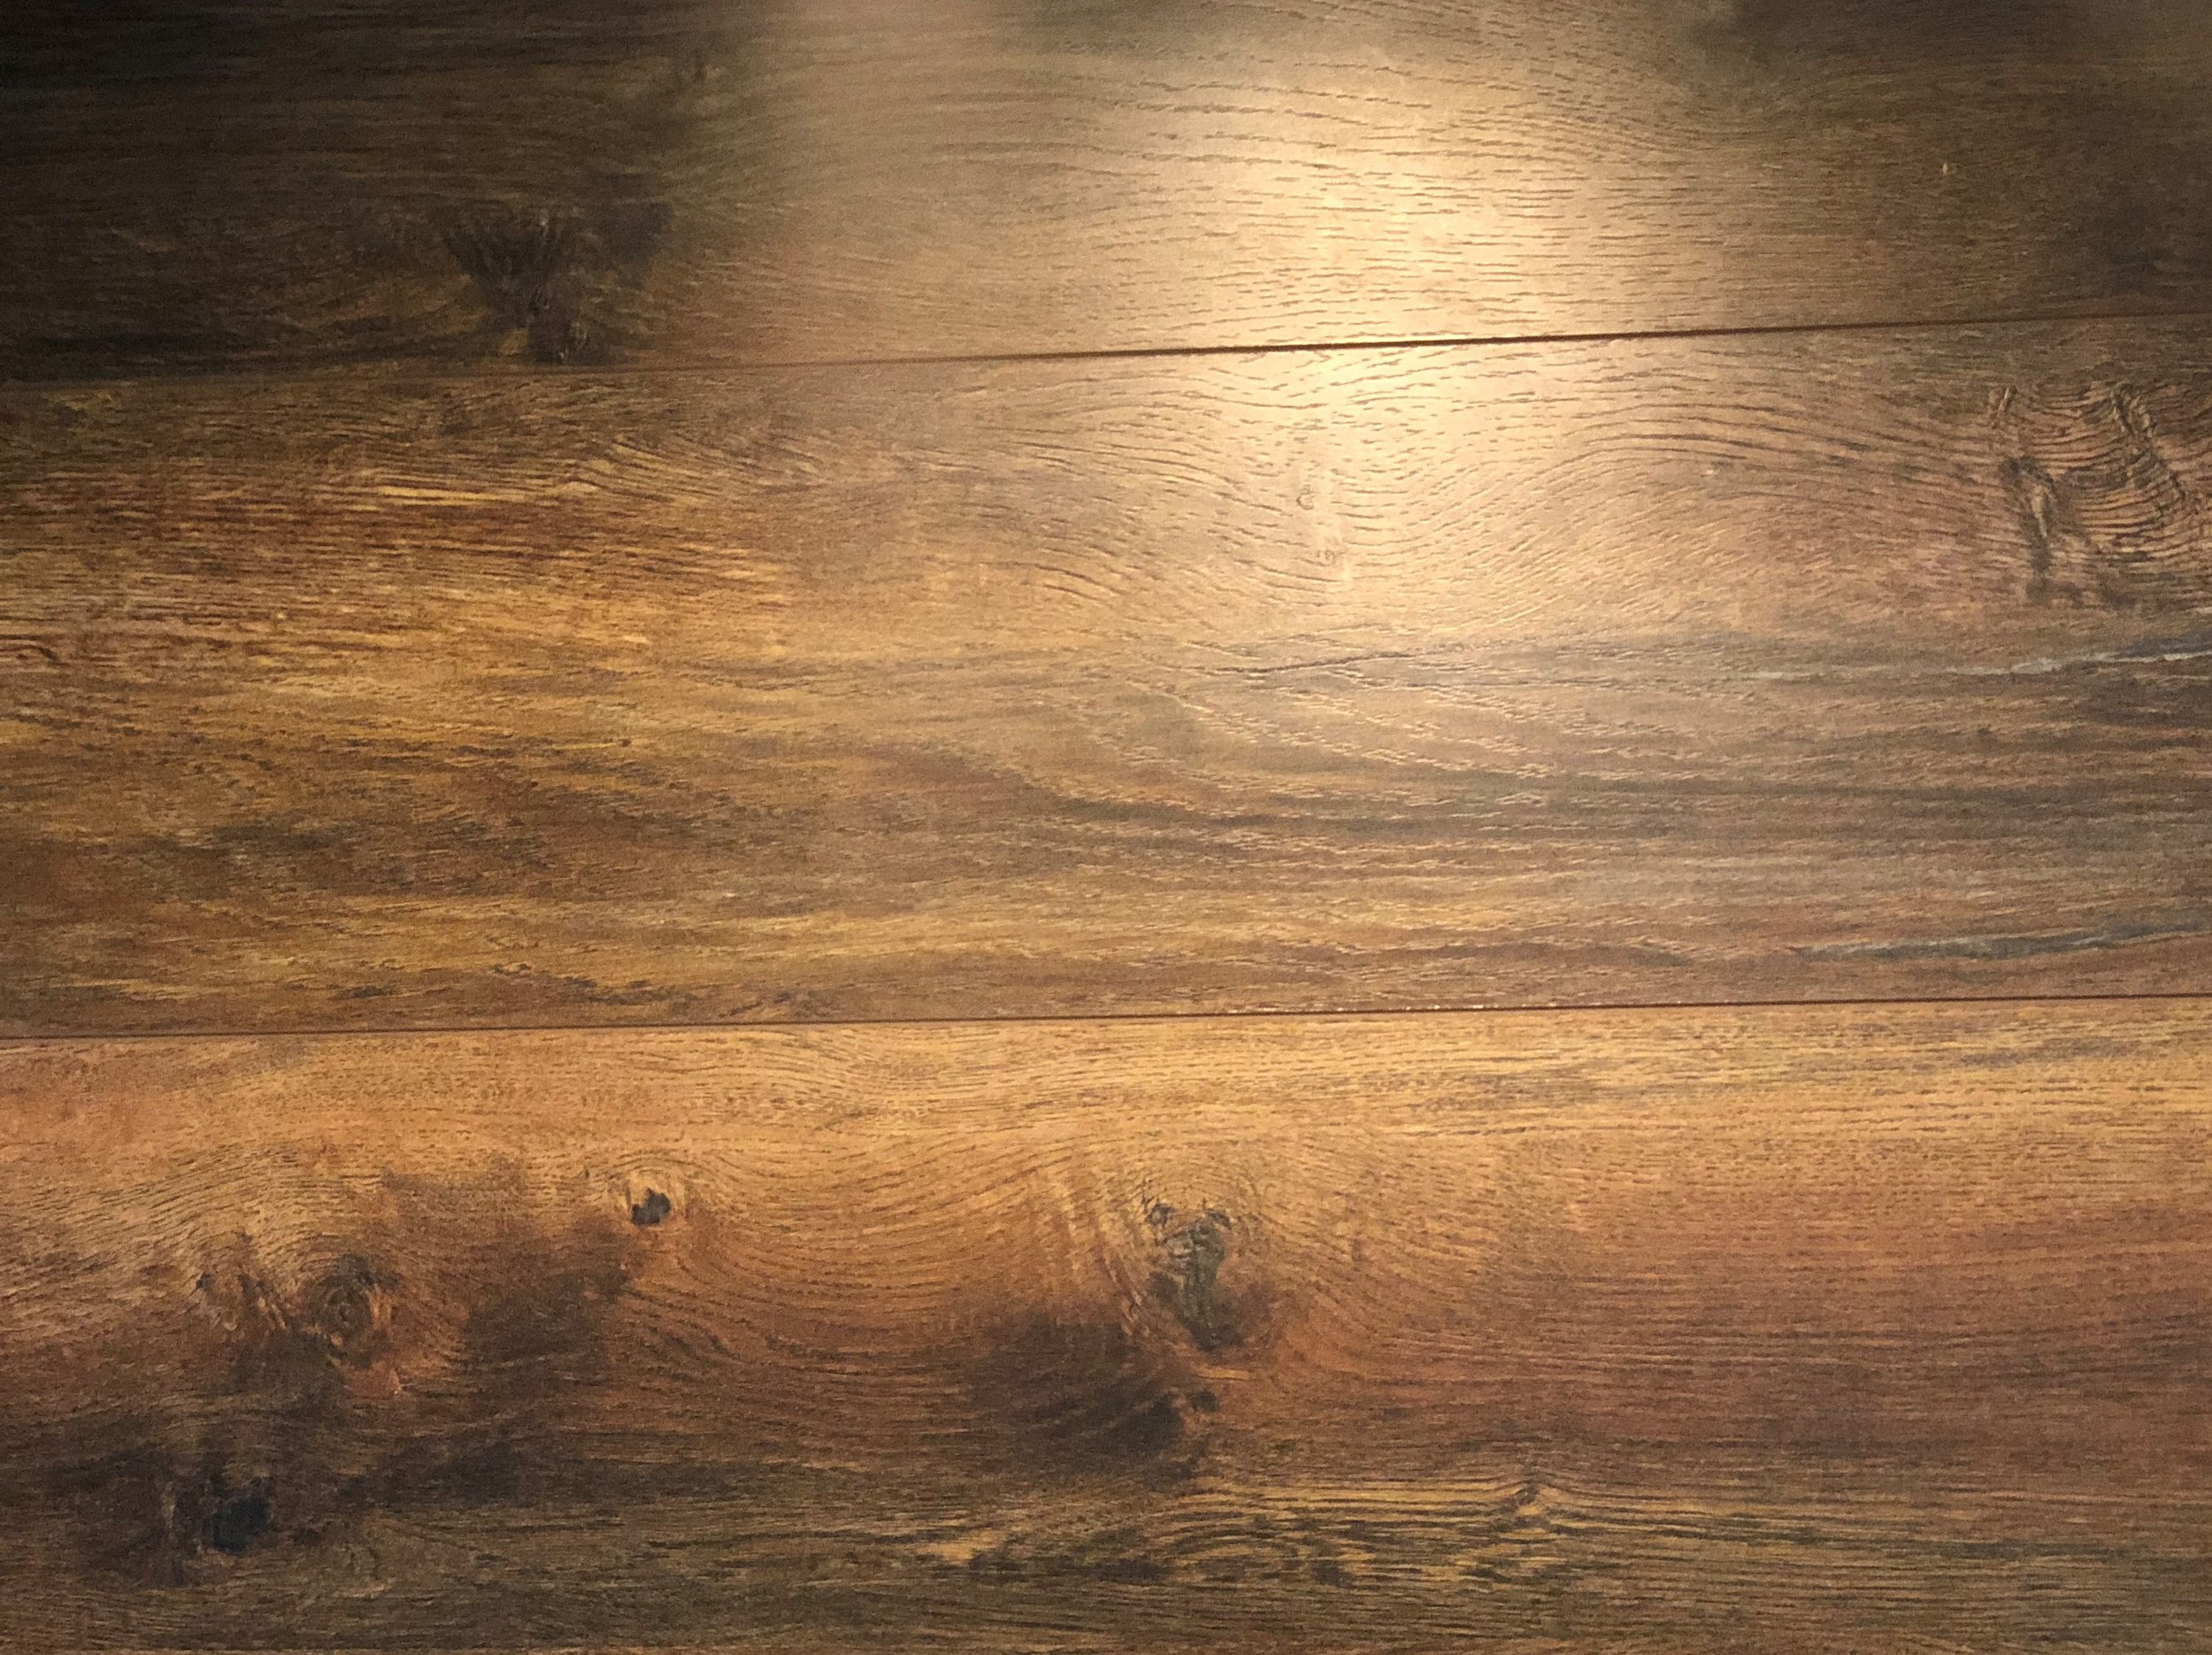 Magnolia - 10mm laminate with pad attached